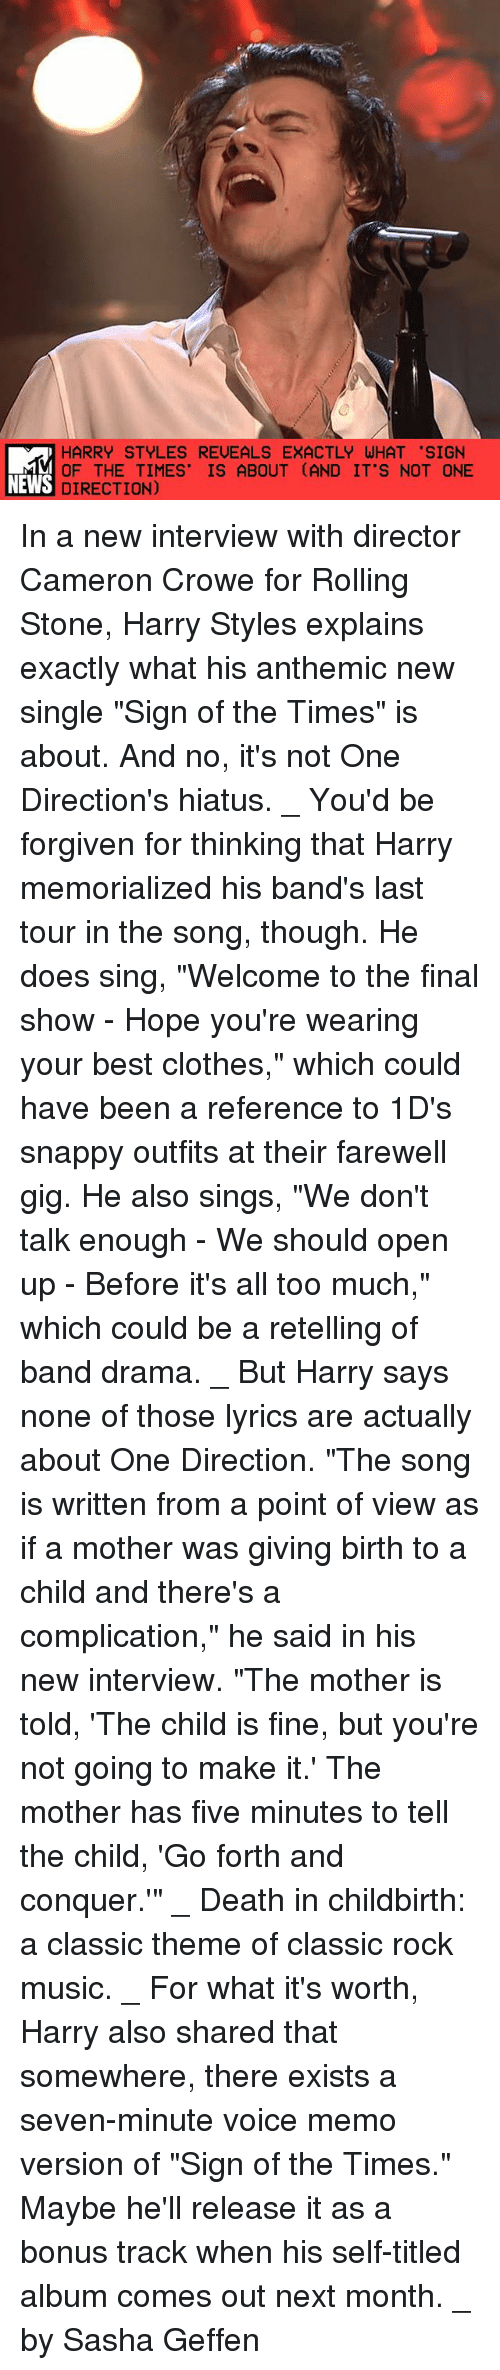 """Clothes, Memes, and Music: HARRY STYLES REVEALS EXACTLY WHAT 'SIGN  OF THE TIMES' IS ABOUT (AND IT'S NOT ONE  NEWS DIRECTION) In a new interview with director Cameron Crowe for Rolling Stone, Harry Styles explains exactly what his anthemic new single """"Sign of the Times"""" is about. And no, it's not One Direction's hiatus. _ You'd be forgiven for thinking that Harry memorialized his band's last tour in the song, though. He does sing, """"Welcome to the final show - Hope you're wearing your best clothes,"""" which could have been a reference to 1D's snappy outfits at their farewell gig. He also sings, """"We don't talk enough - We should open up - Before it's all too much,"""" which could be a retelling of band drama. _ But Harry says none of those lyrics are actually about One Direction. """"The song is written from a point of view as if a mother was giving birth to a child and there's a complication,"""" he said in his new interview. """"The mother is told, 'The child is fine, but you're not going to make it.' The mother has five minutes to tell the child, 'Go forth and conquer.'"""" _ Death in childbirth: a classic theme of classic rock music. _ For what it's worth, Harry also shared that somewhere, there exists a seven-minute voice memo version of """"Sign of the Times."""" Maybe he'll release it as a bonus track when his self-titled album comes out next month. _ by Sasha Geffen"""